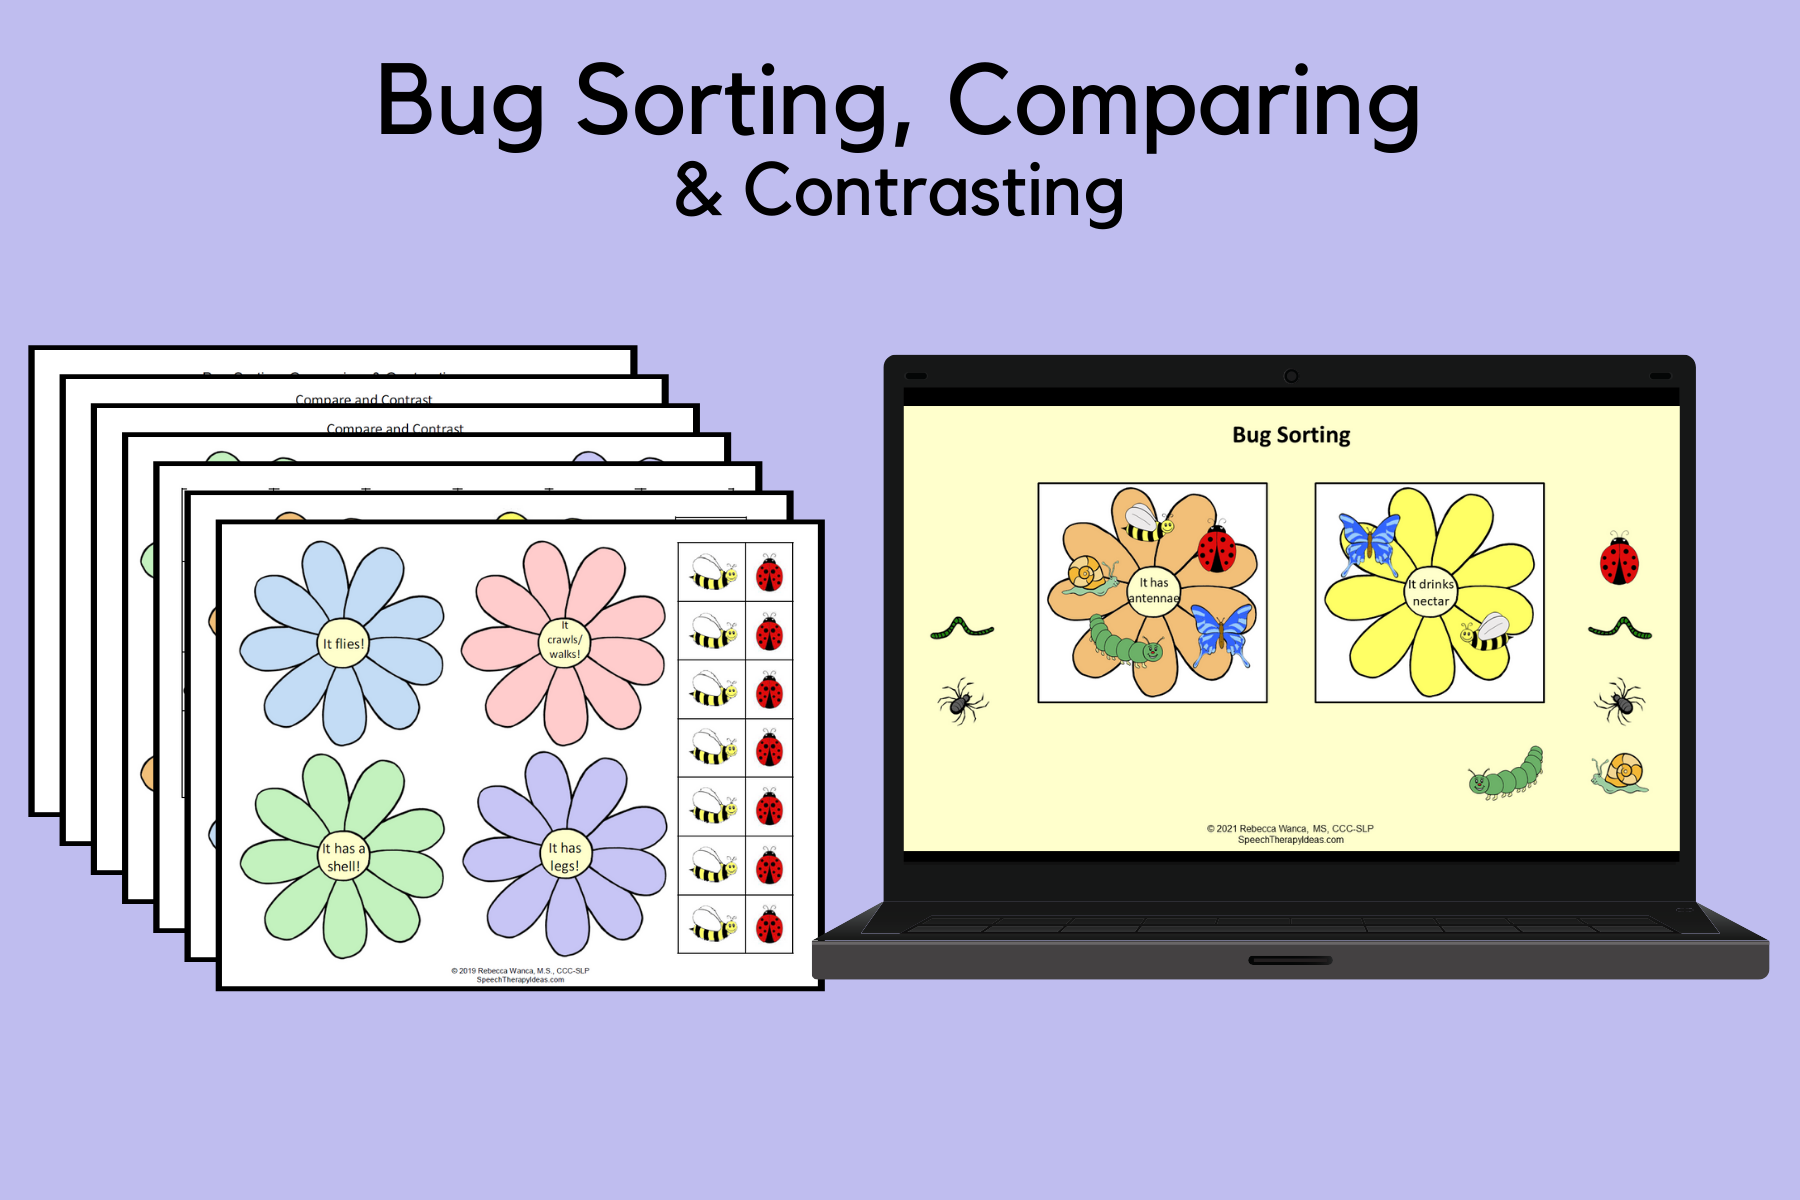 Bug Sorting, Comparing & Contrasting